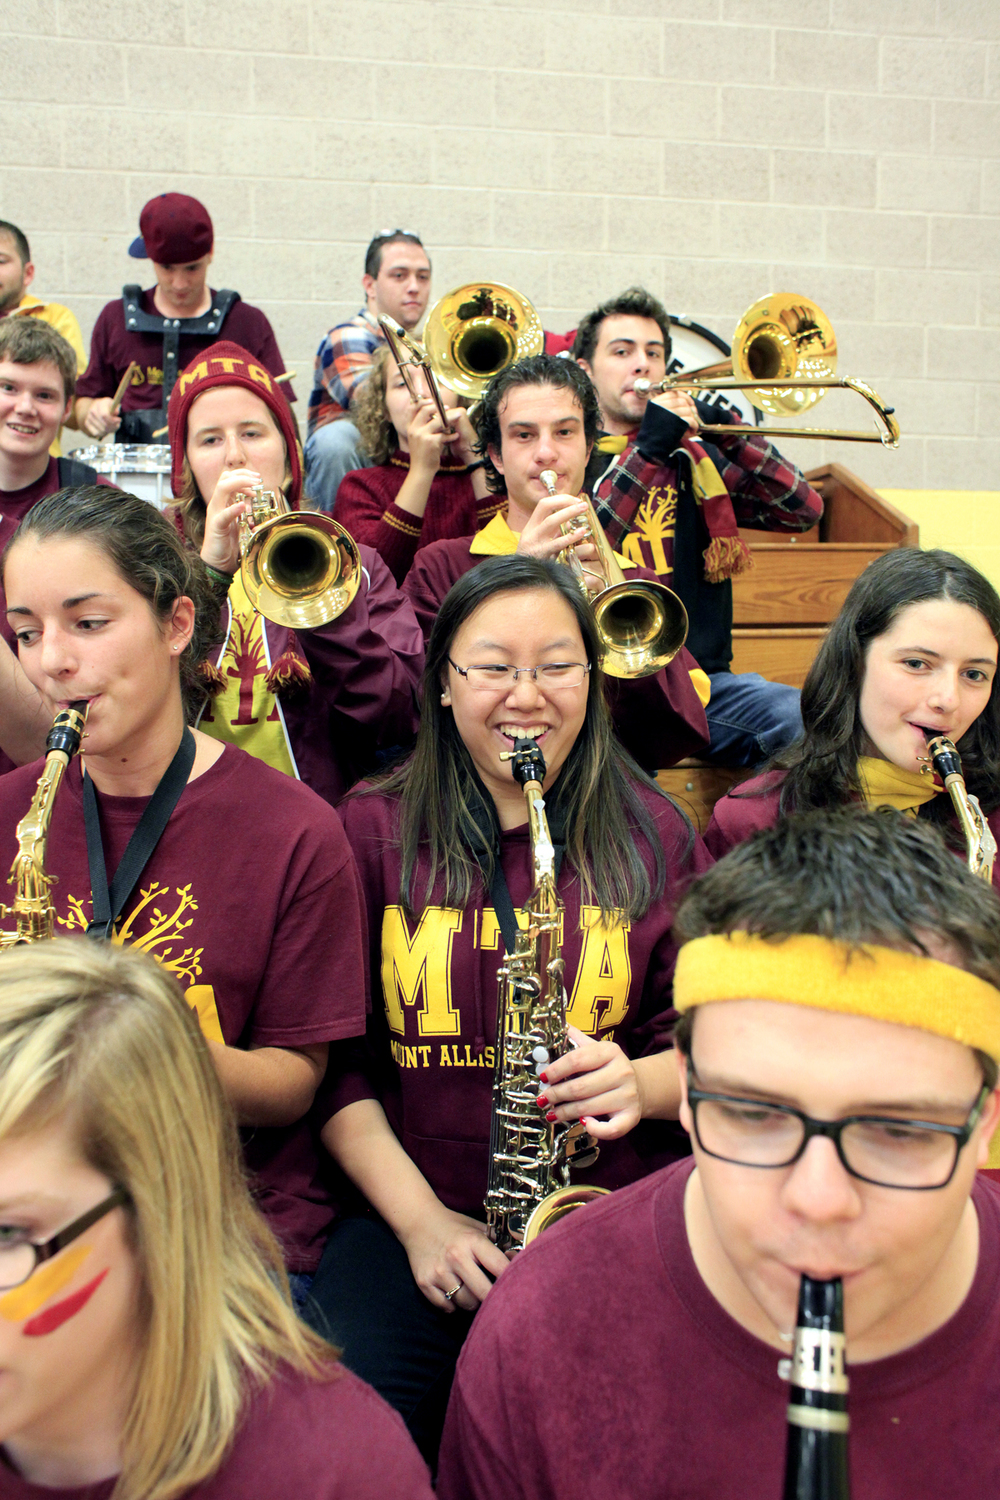 Pep band, Mount Allison University